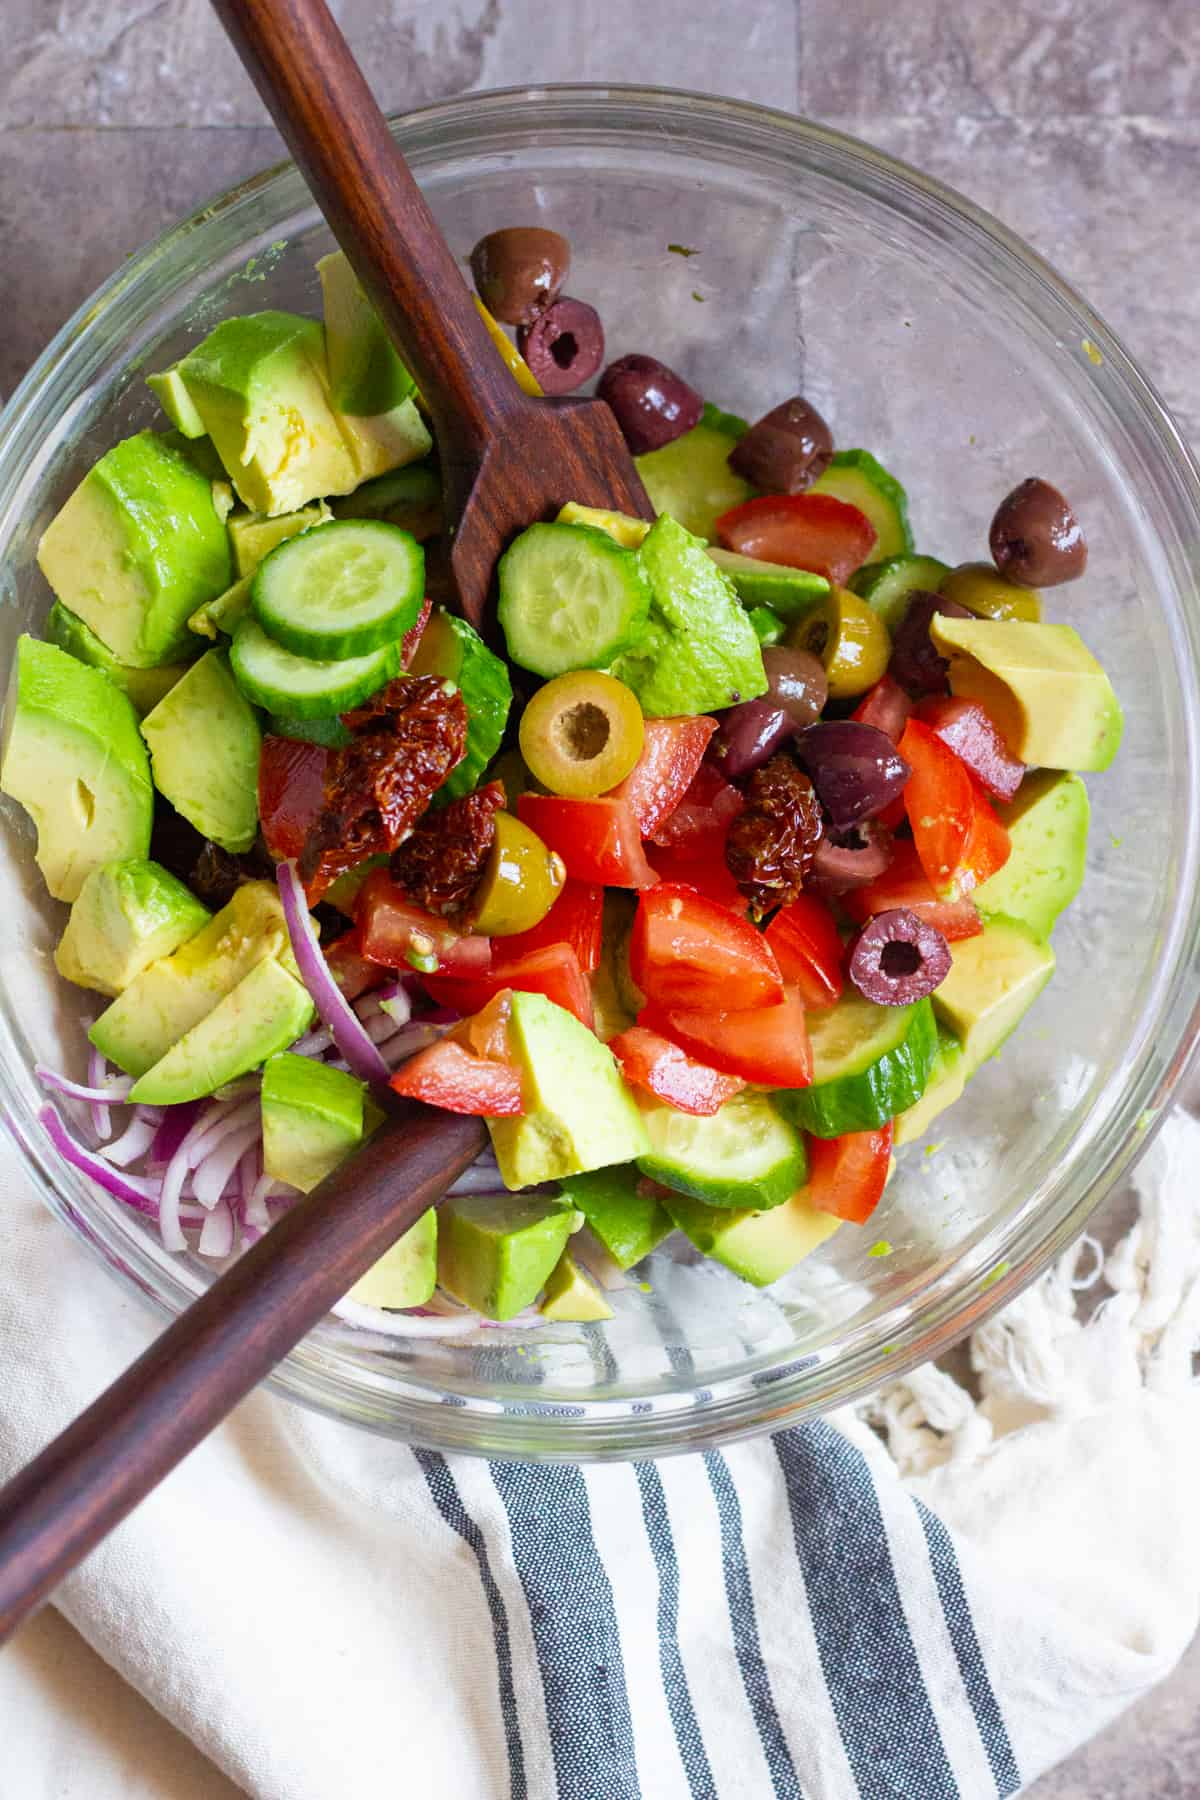 Mix all the ingredients for cucumber avocado salad in a large bowl.